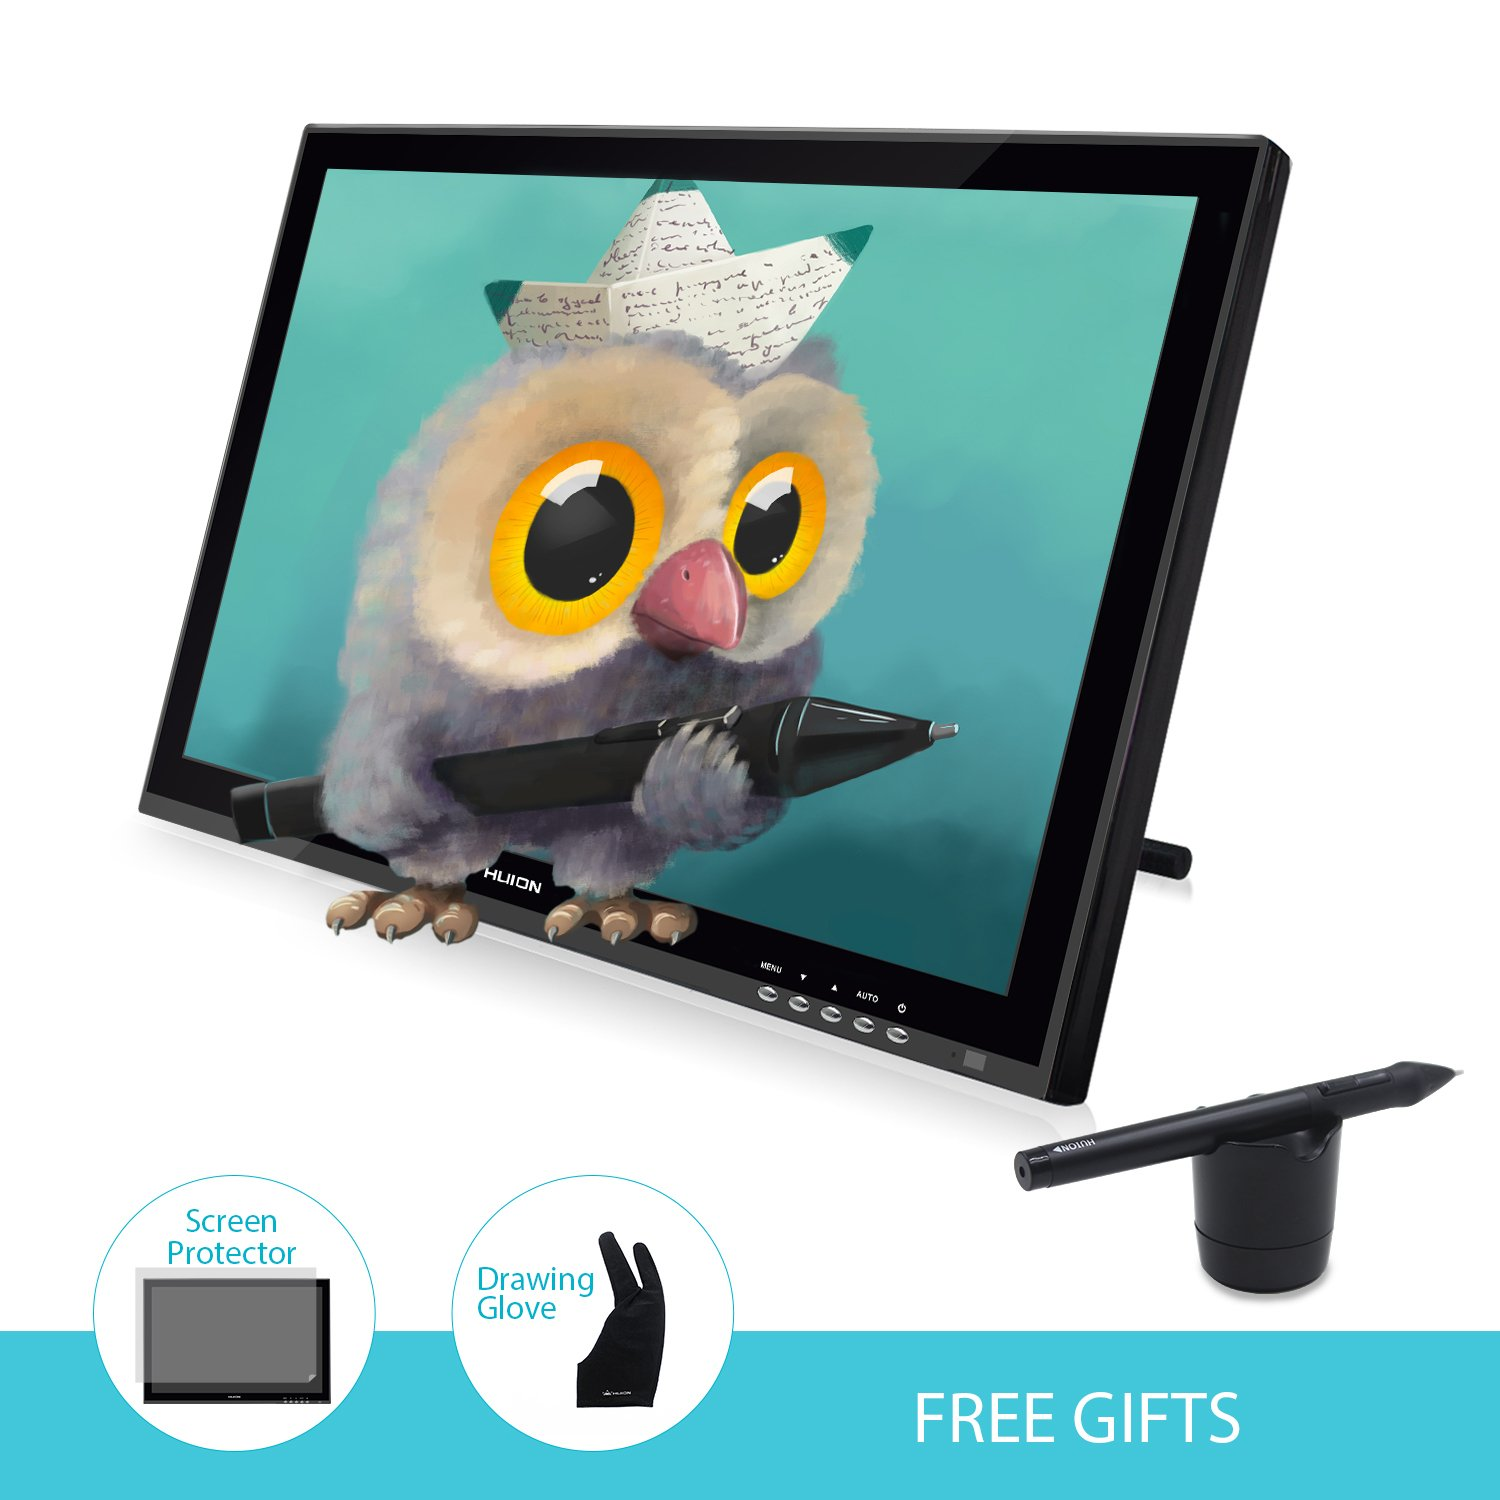 Huion Pen Display for Professionals Graphics Monitor - GT-190S w/ Glove by Huion